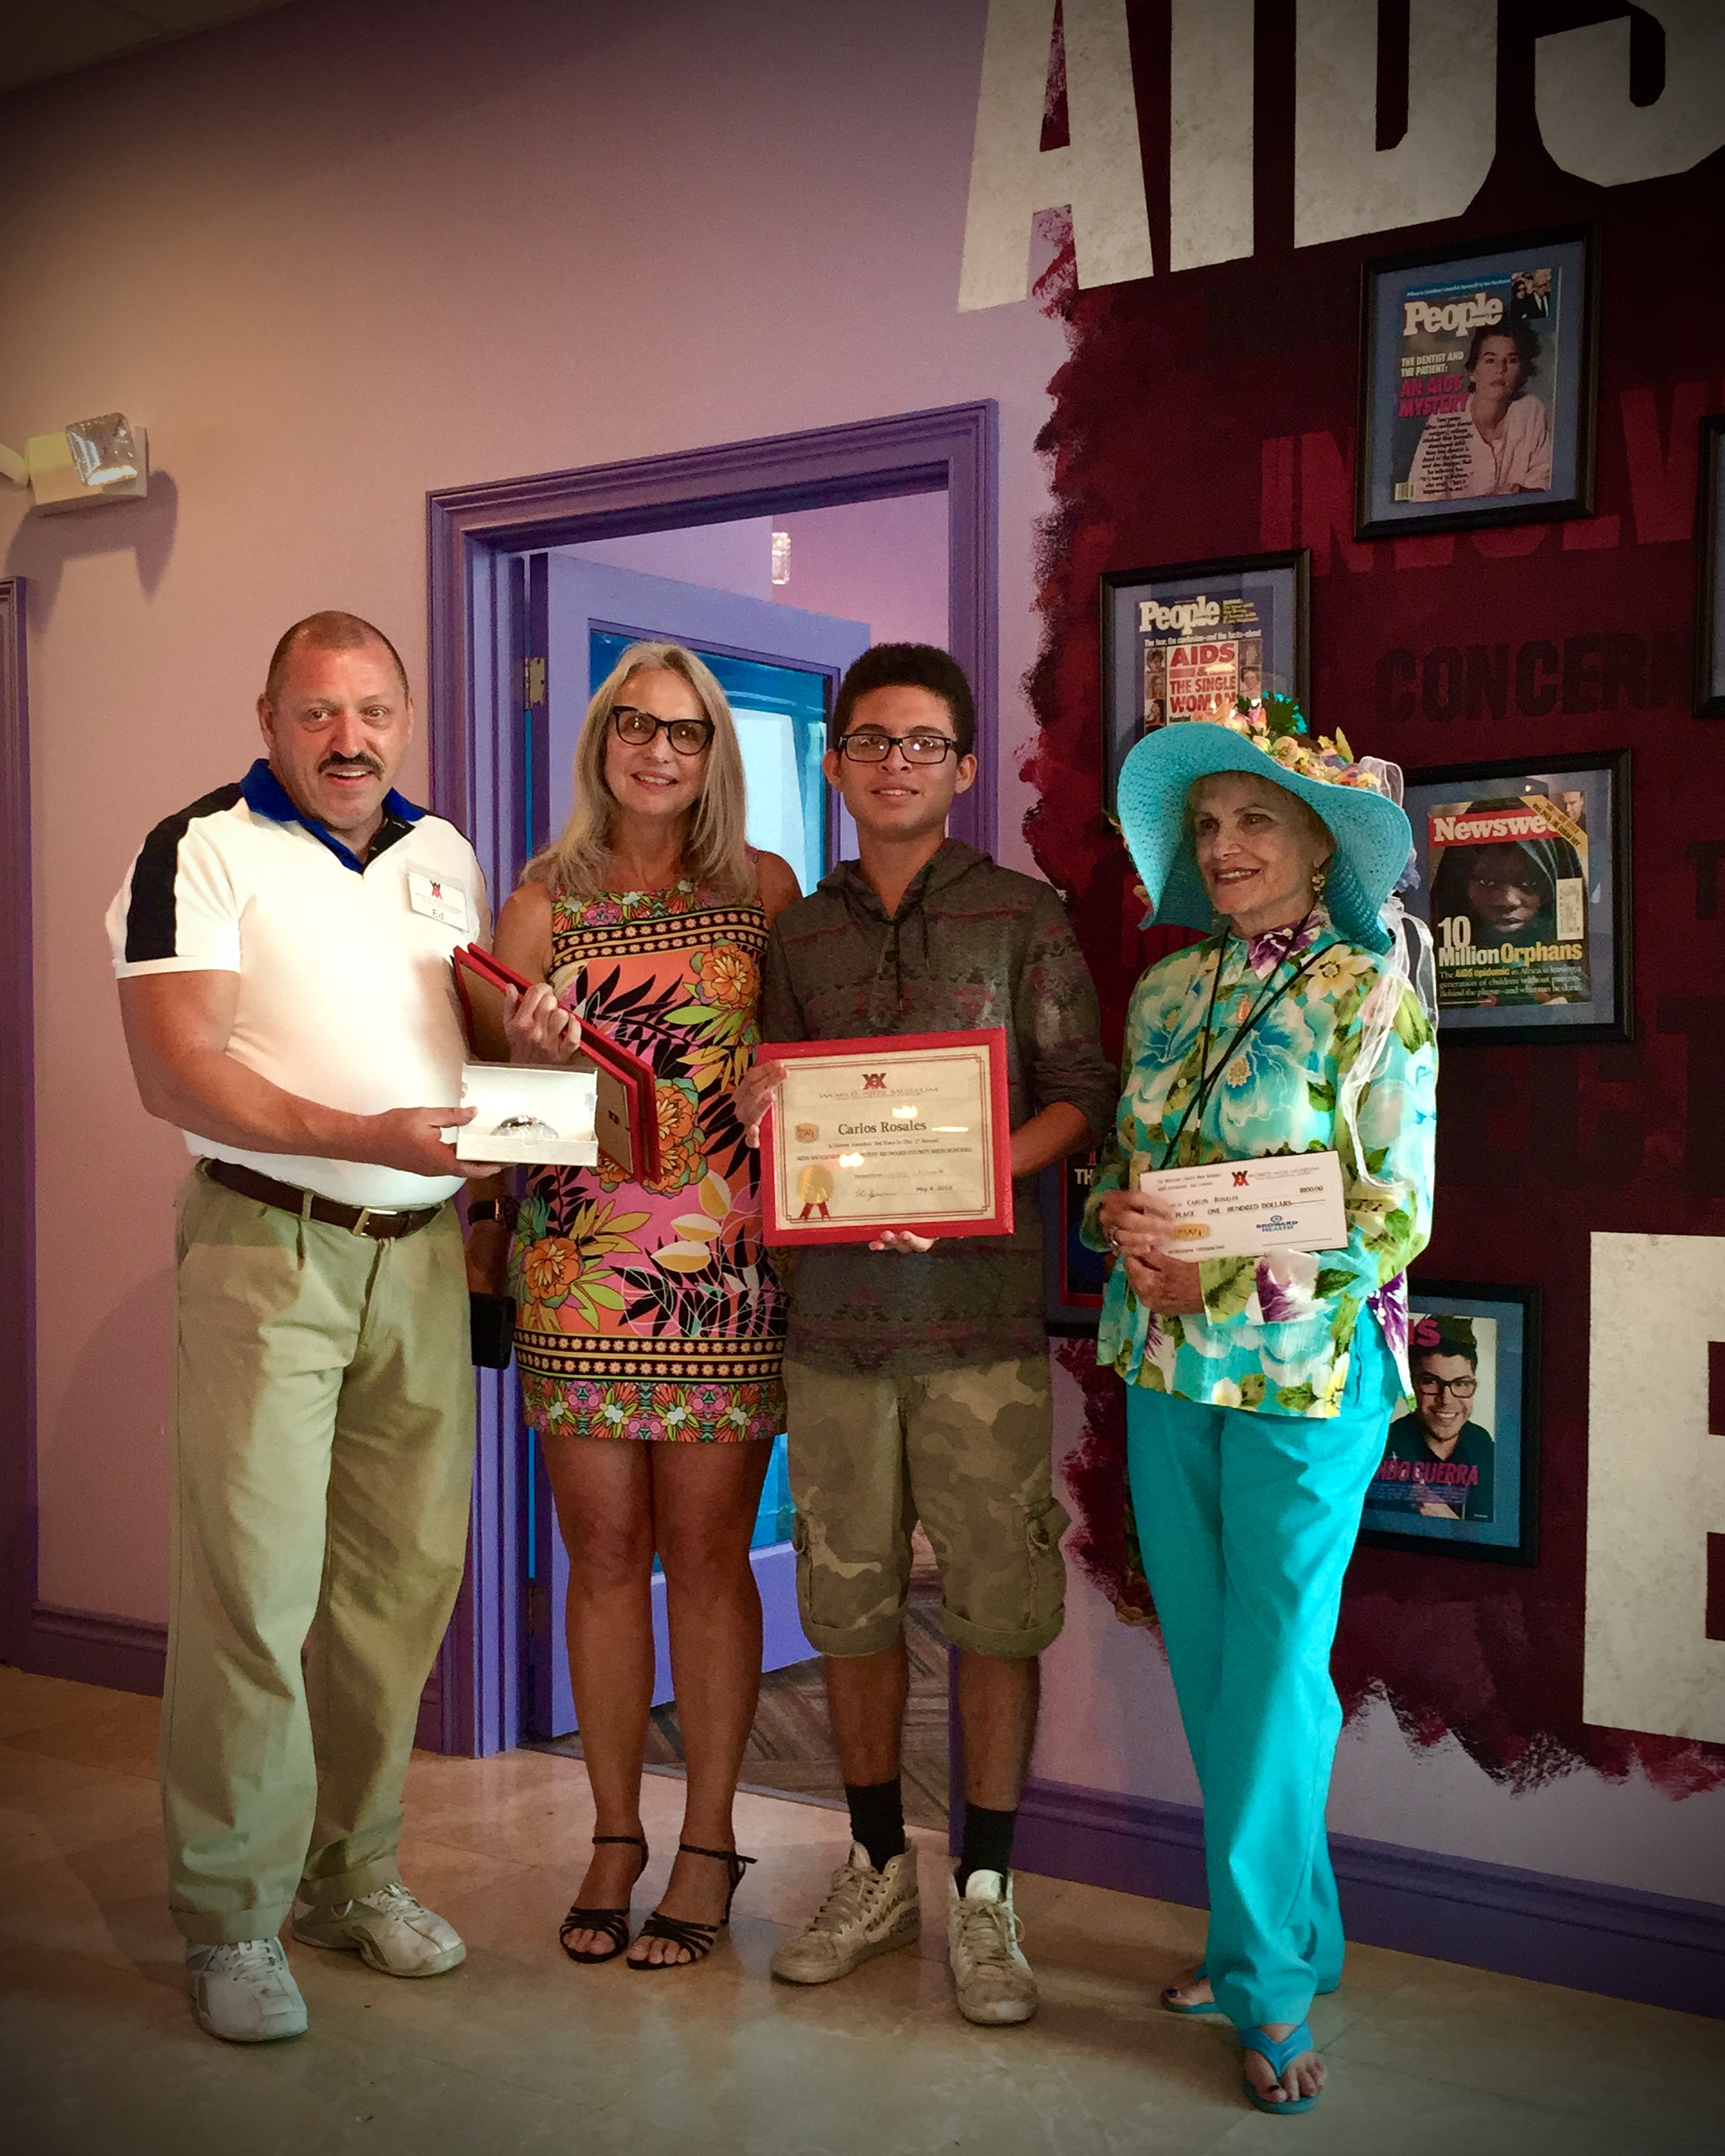 Carlos Rosales, center, with his 2nd place award with Lynne Warrick and Jean Holcomb of the Lynne Warrick Institute which organized the AIDS art contest for Broward High School